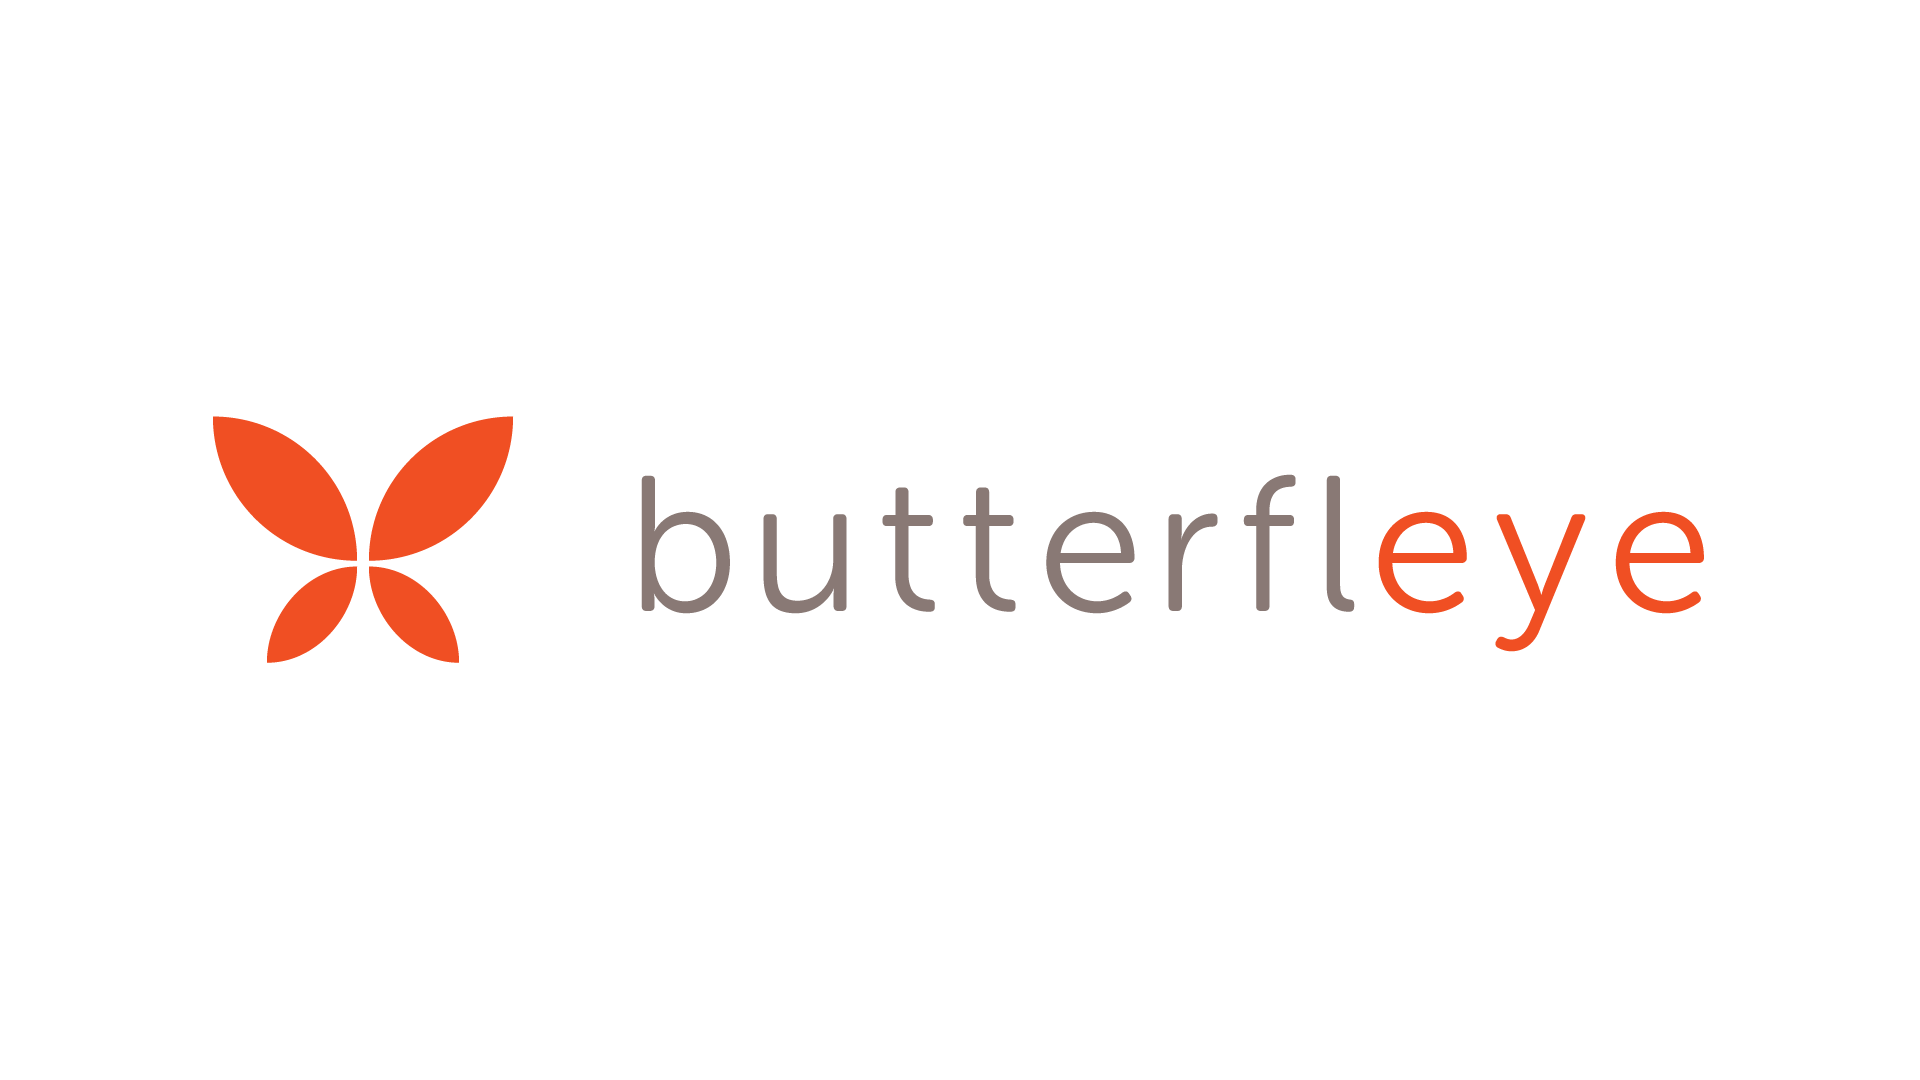 What devices does Butterfleye support?